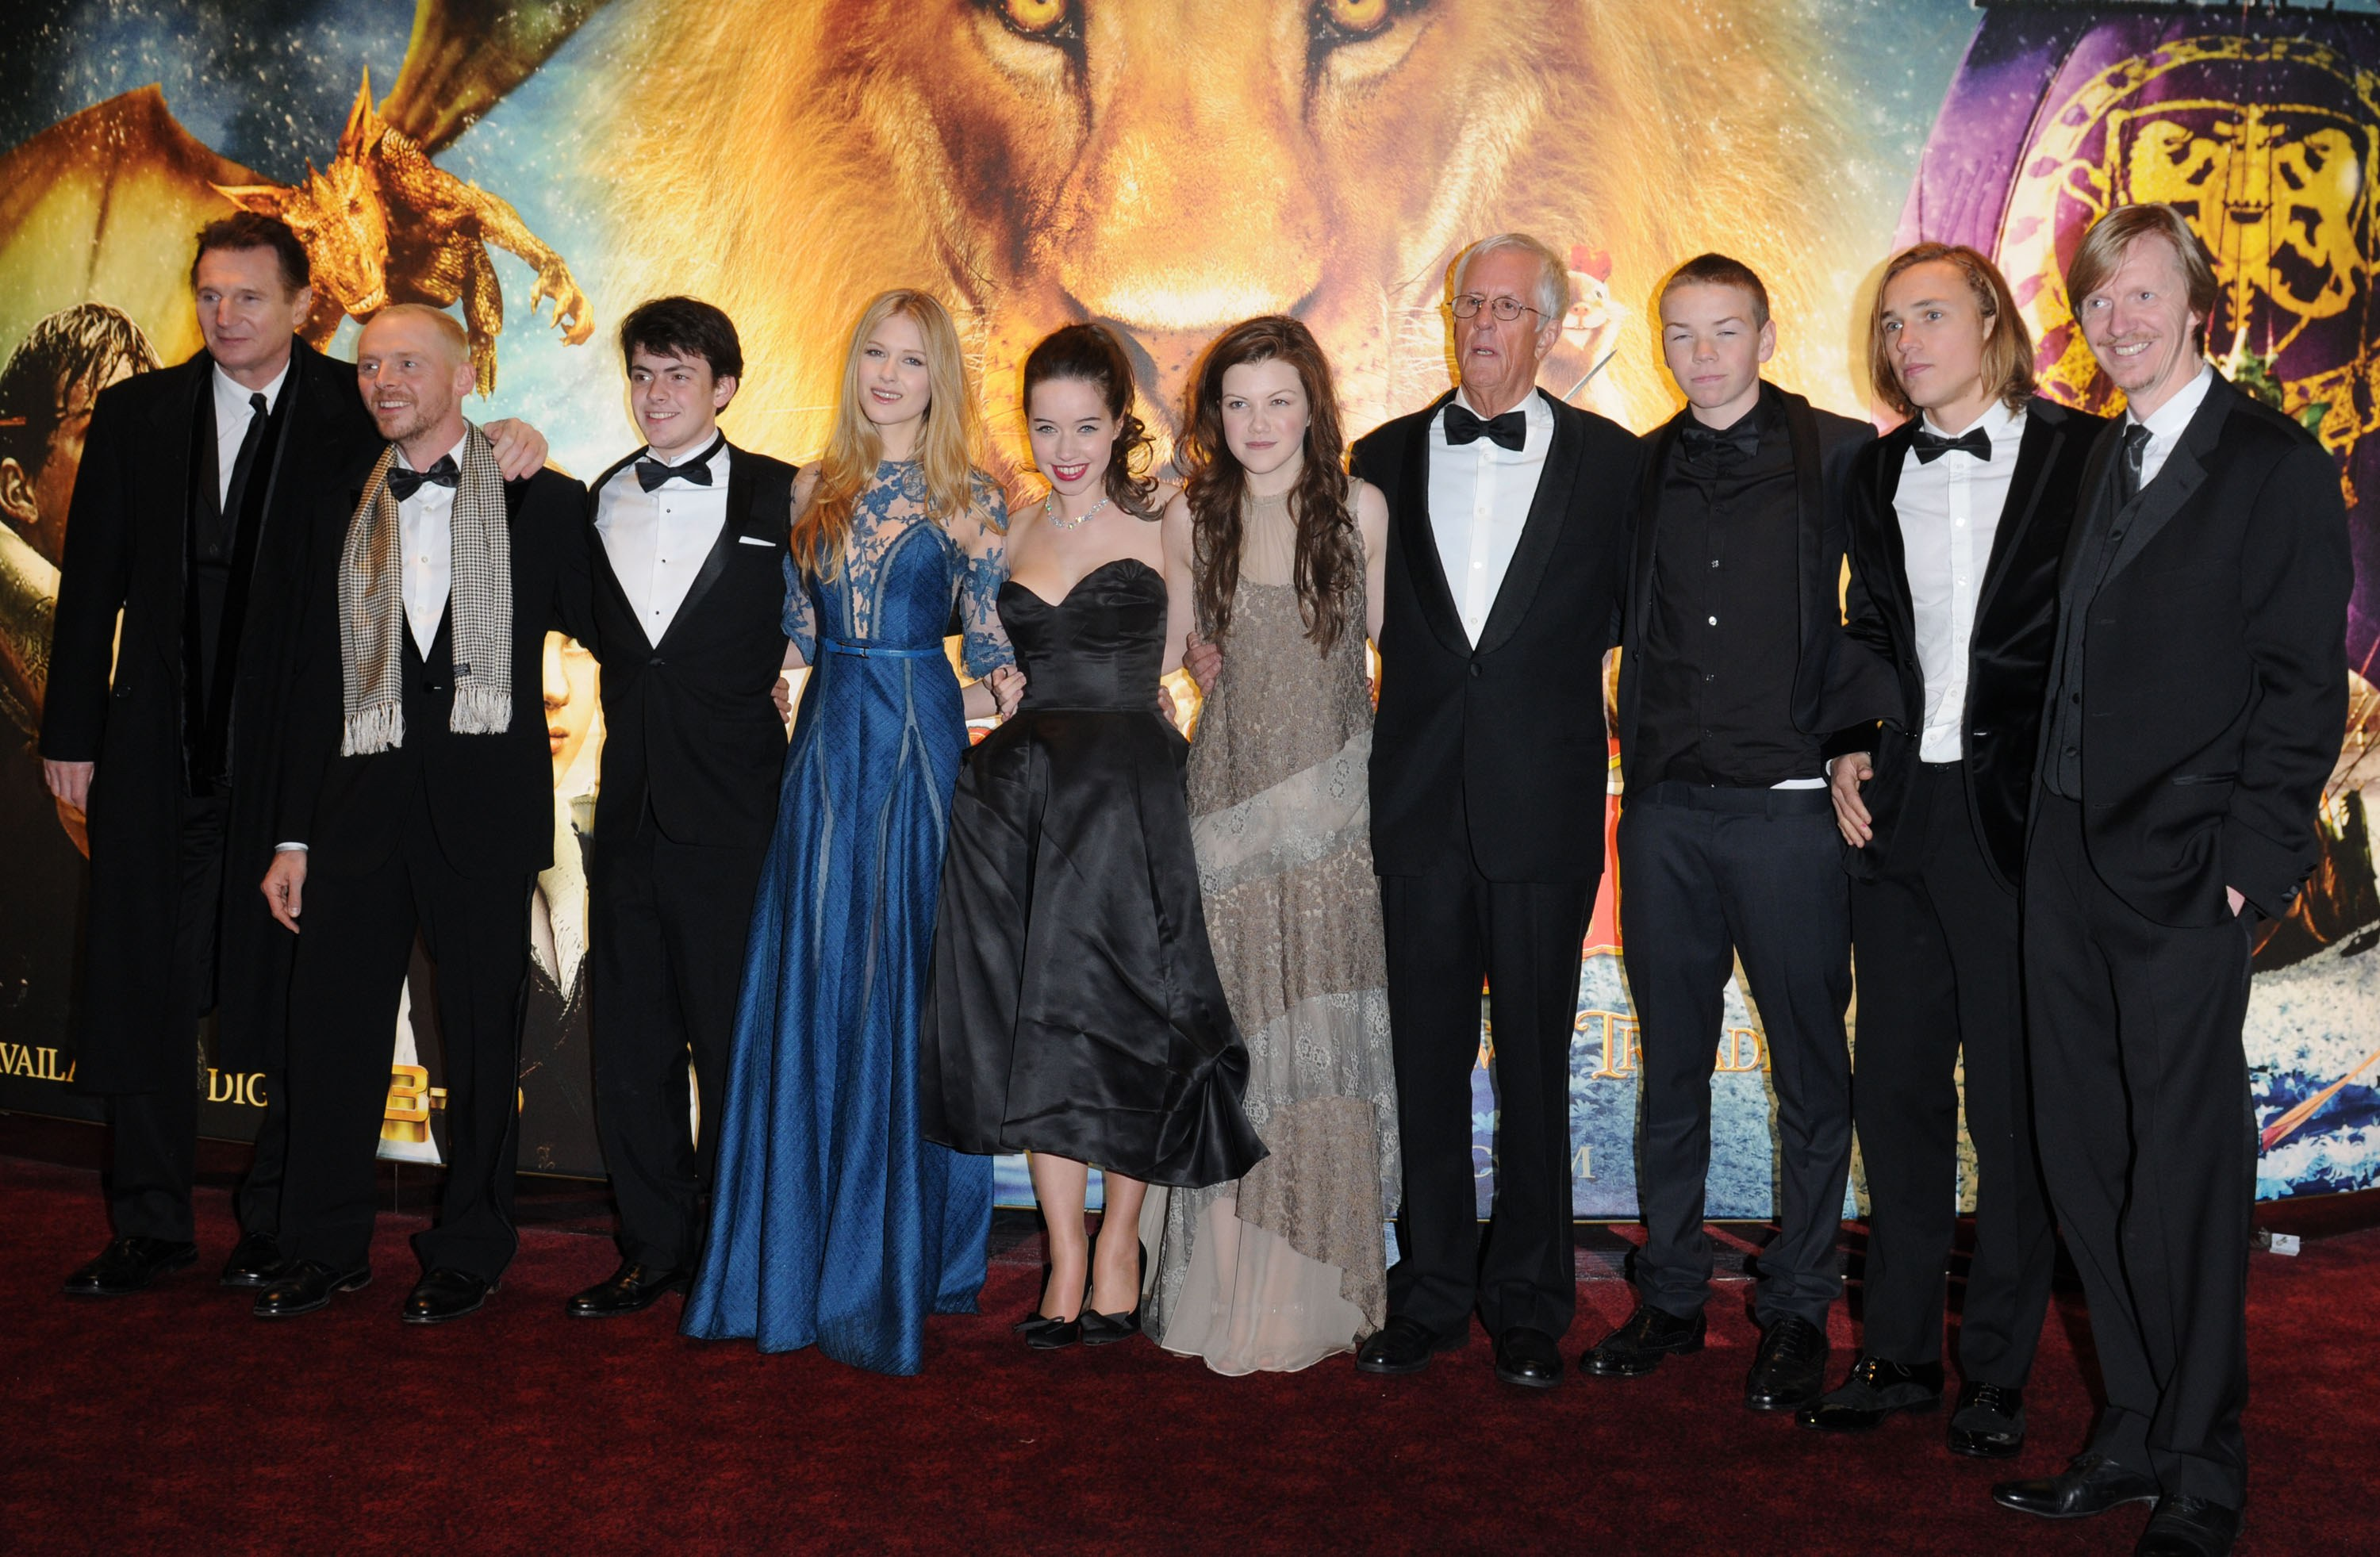 The World Premiere Of The Voyage Of The Dawn Treader Narniaweb